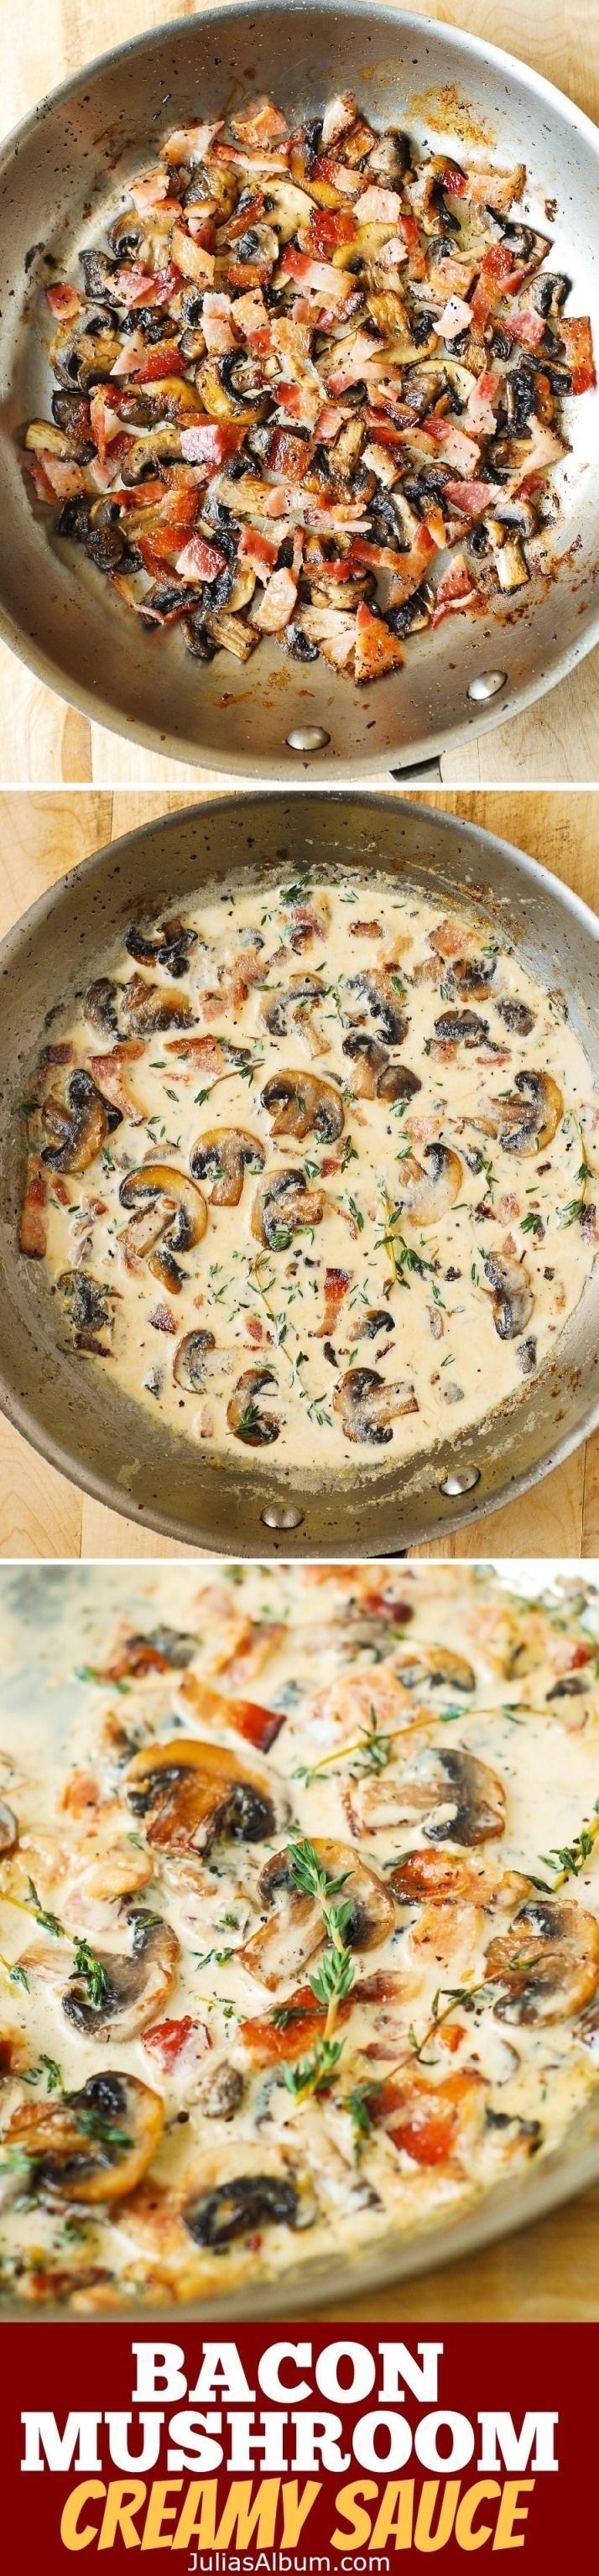 Creamy Mushroom Sauce with Bacon and Thyme – a great accompaniment to baked and grilled meats, chicken, pork, steaks. Gluten free,